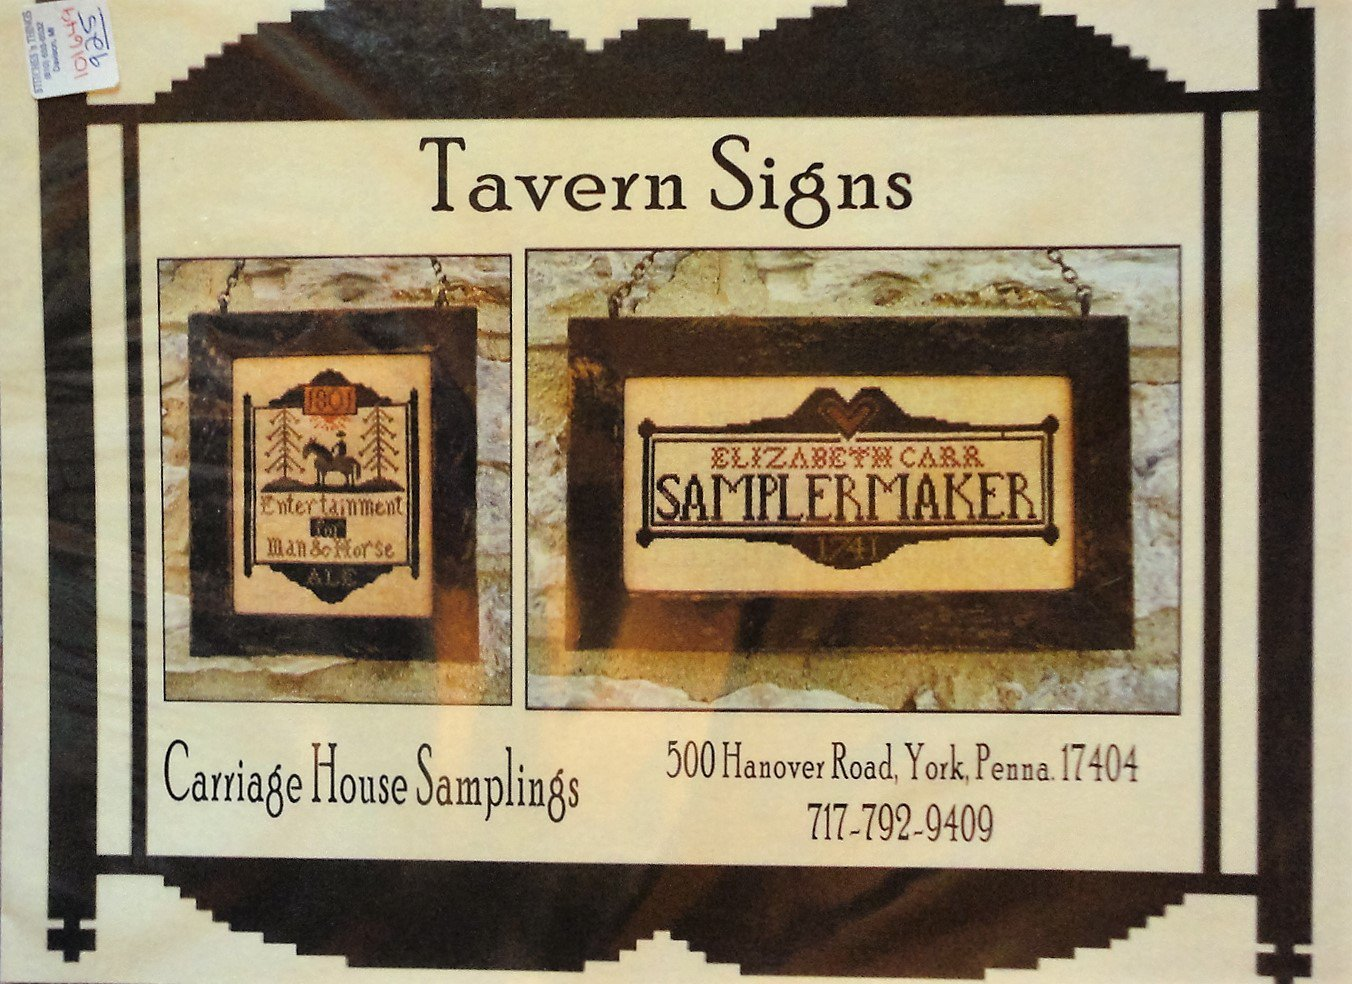 Carriage House Samplings Tavern Signs Cross Stitch Chart